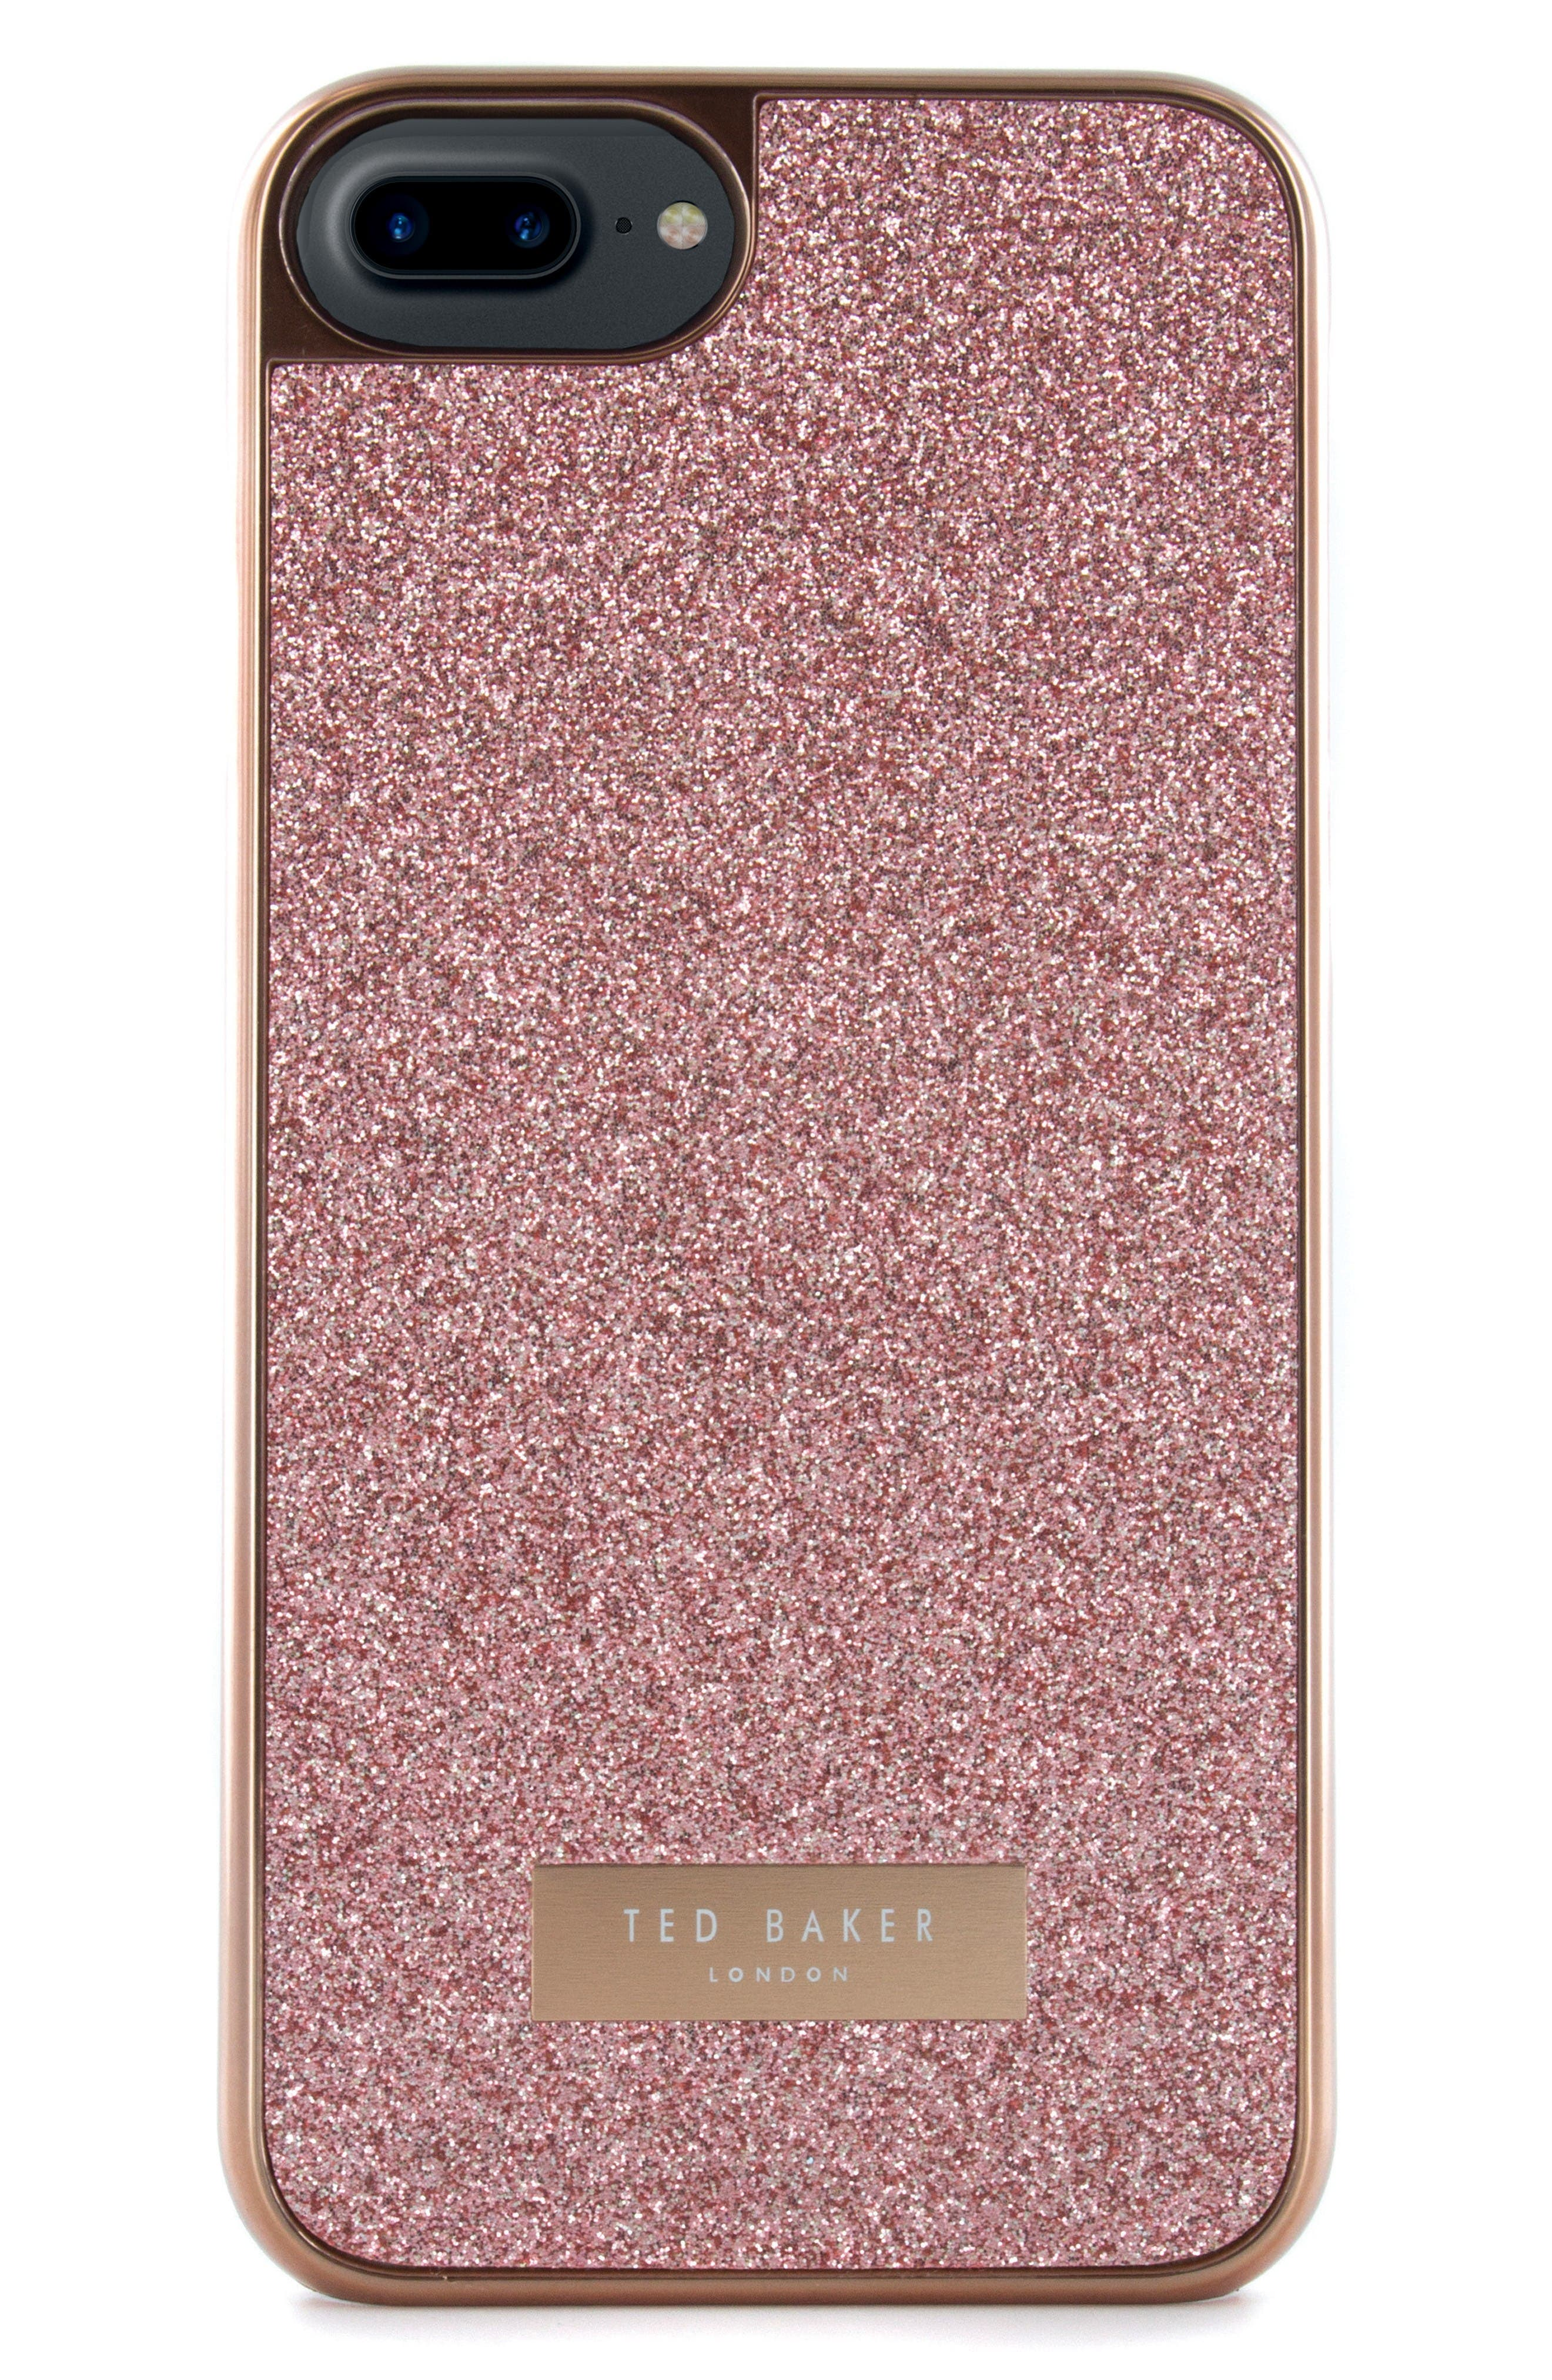 Ted Baker London Rico iPhone 6/6s/7/8 Plus Case